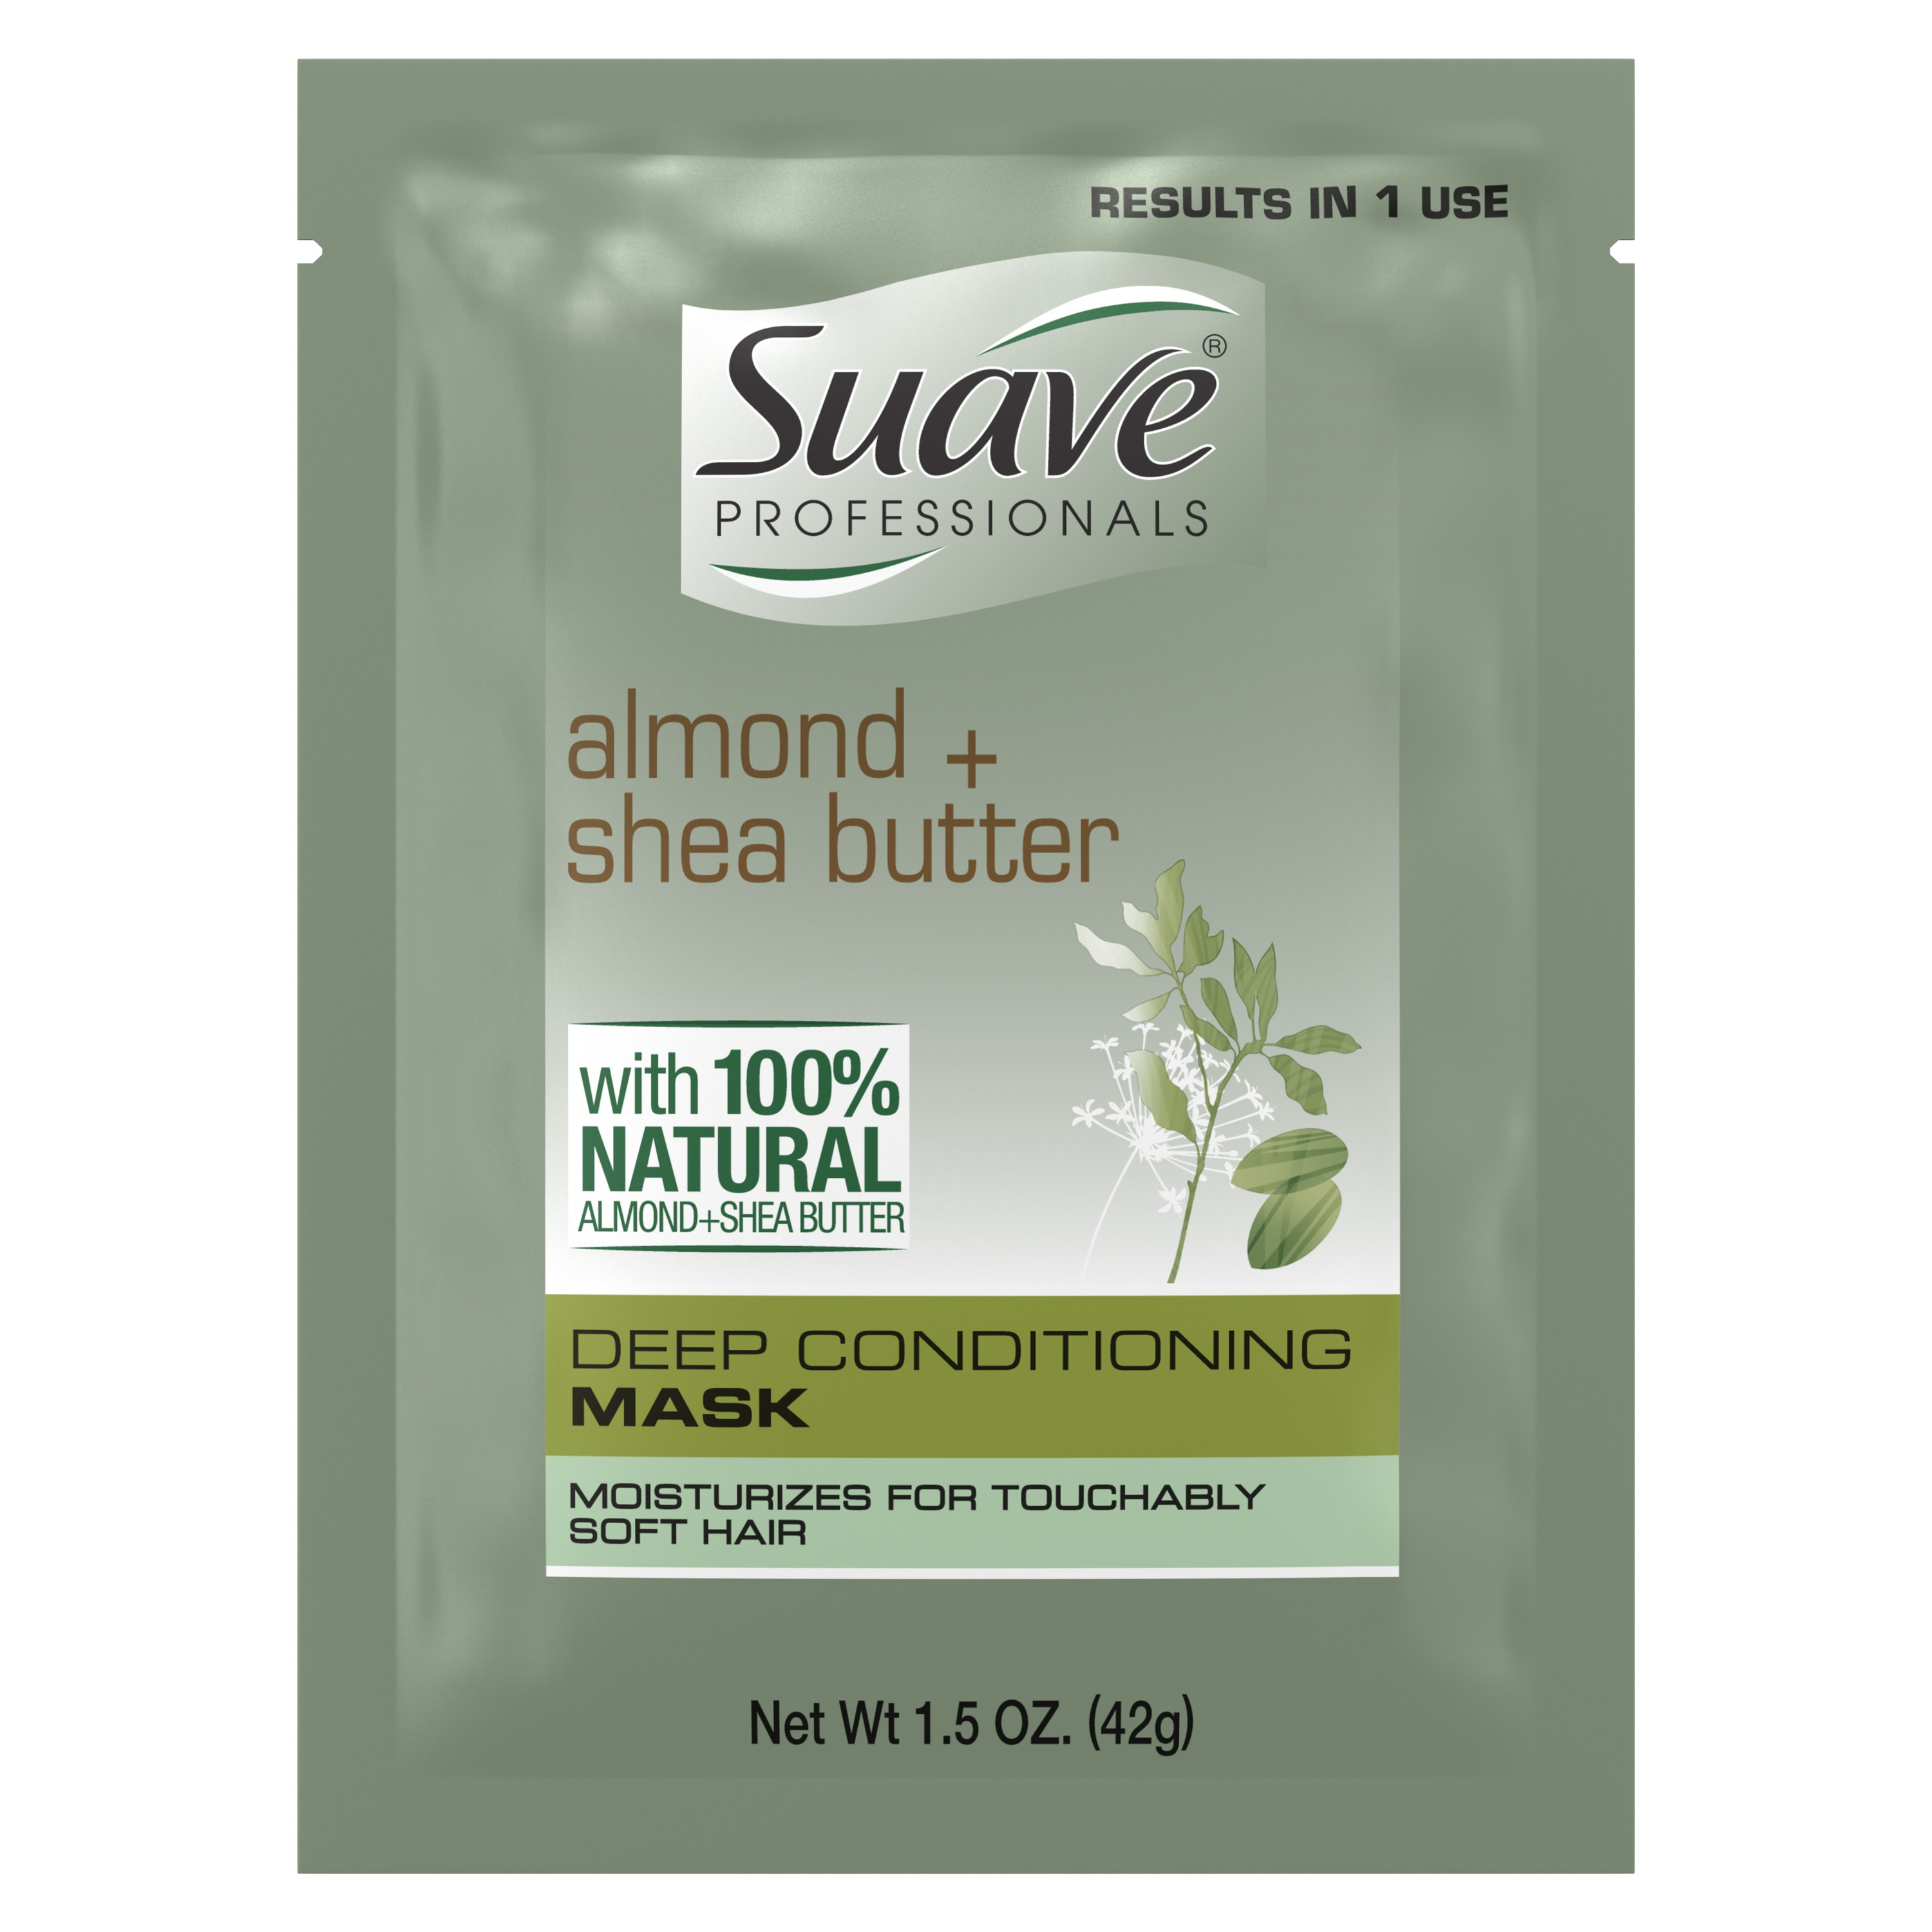 Suave Professionals Intense Moisture Hair Mask Almond and Shea Butter 1.5 oz